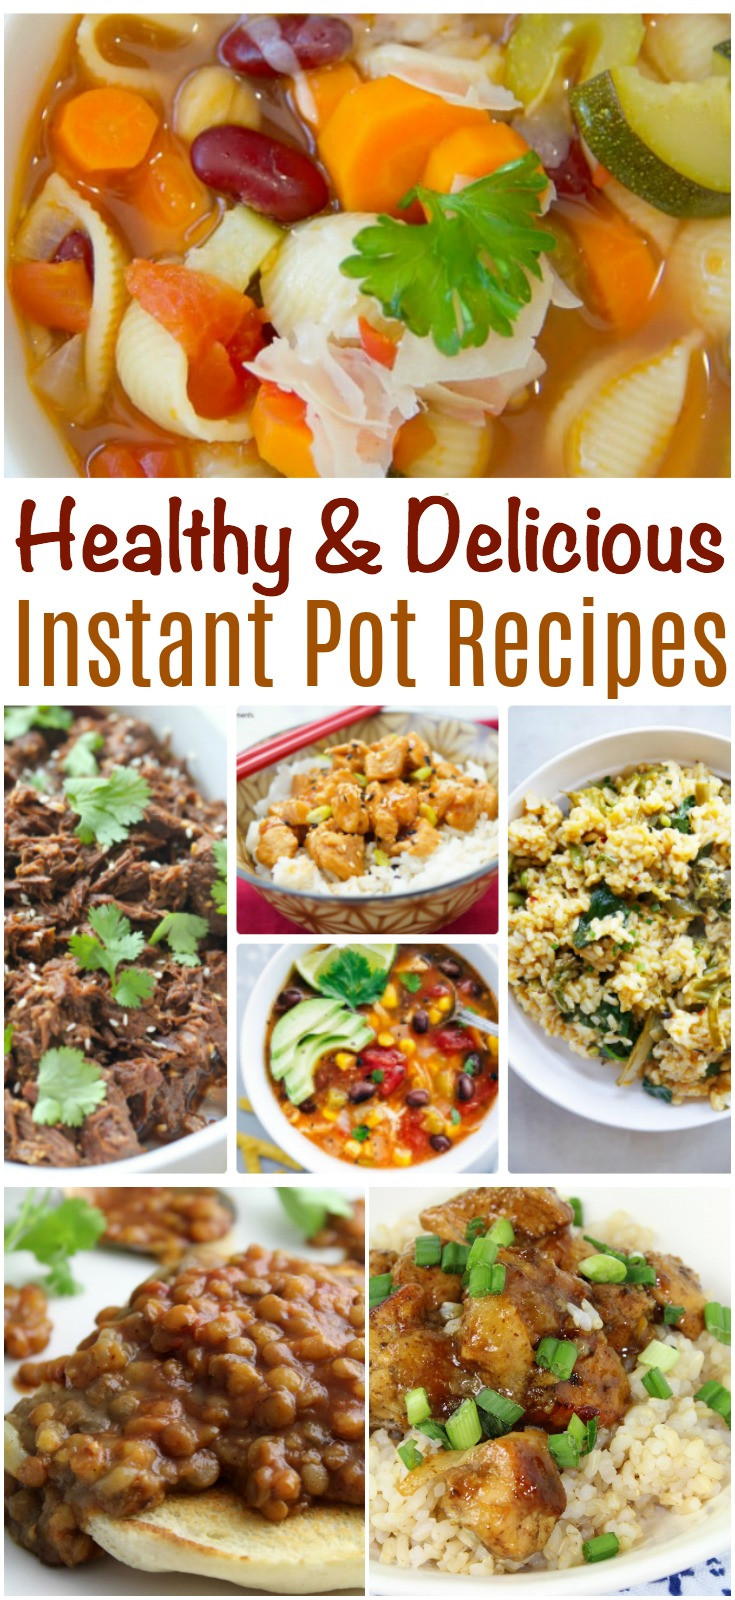 Healthy Instant Pot Recipes  Healthy and Delicious Instant Pot Recipes